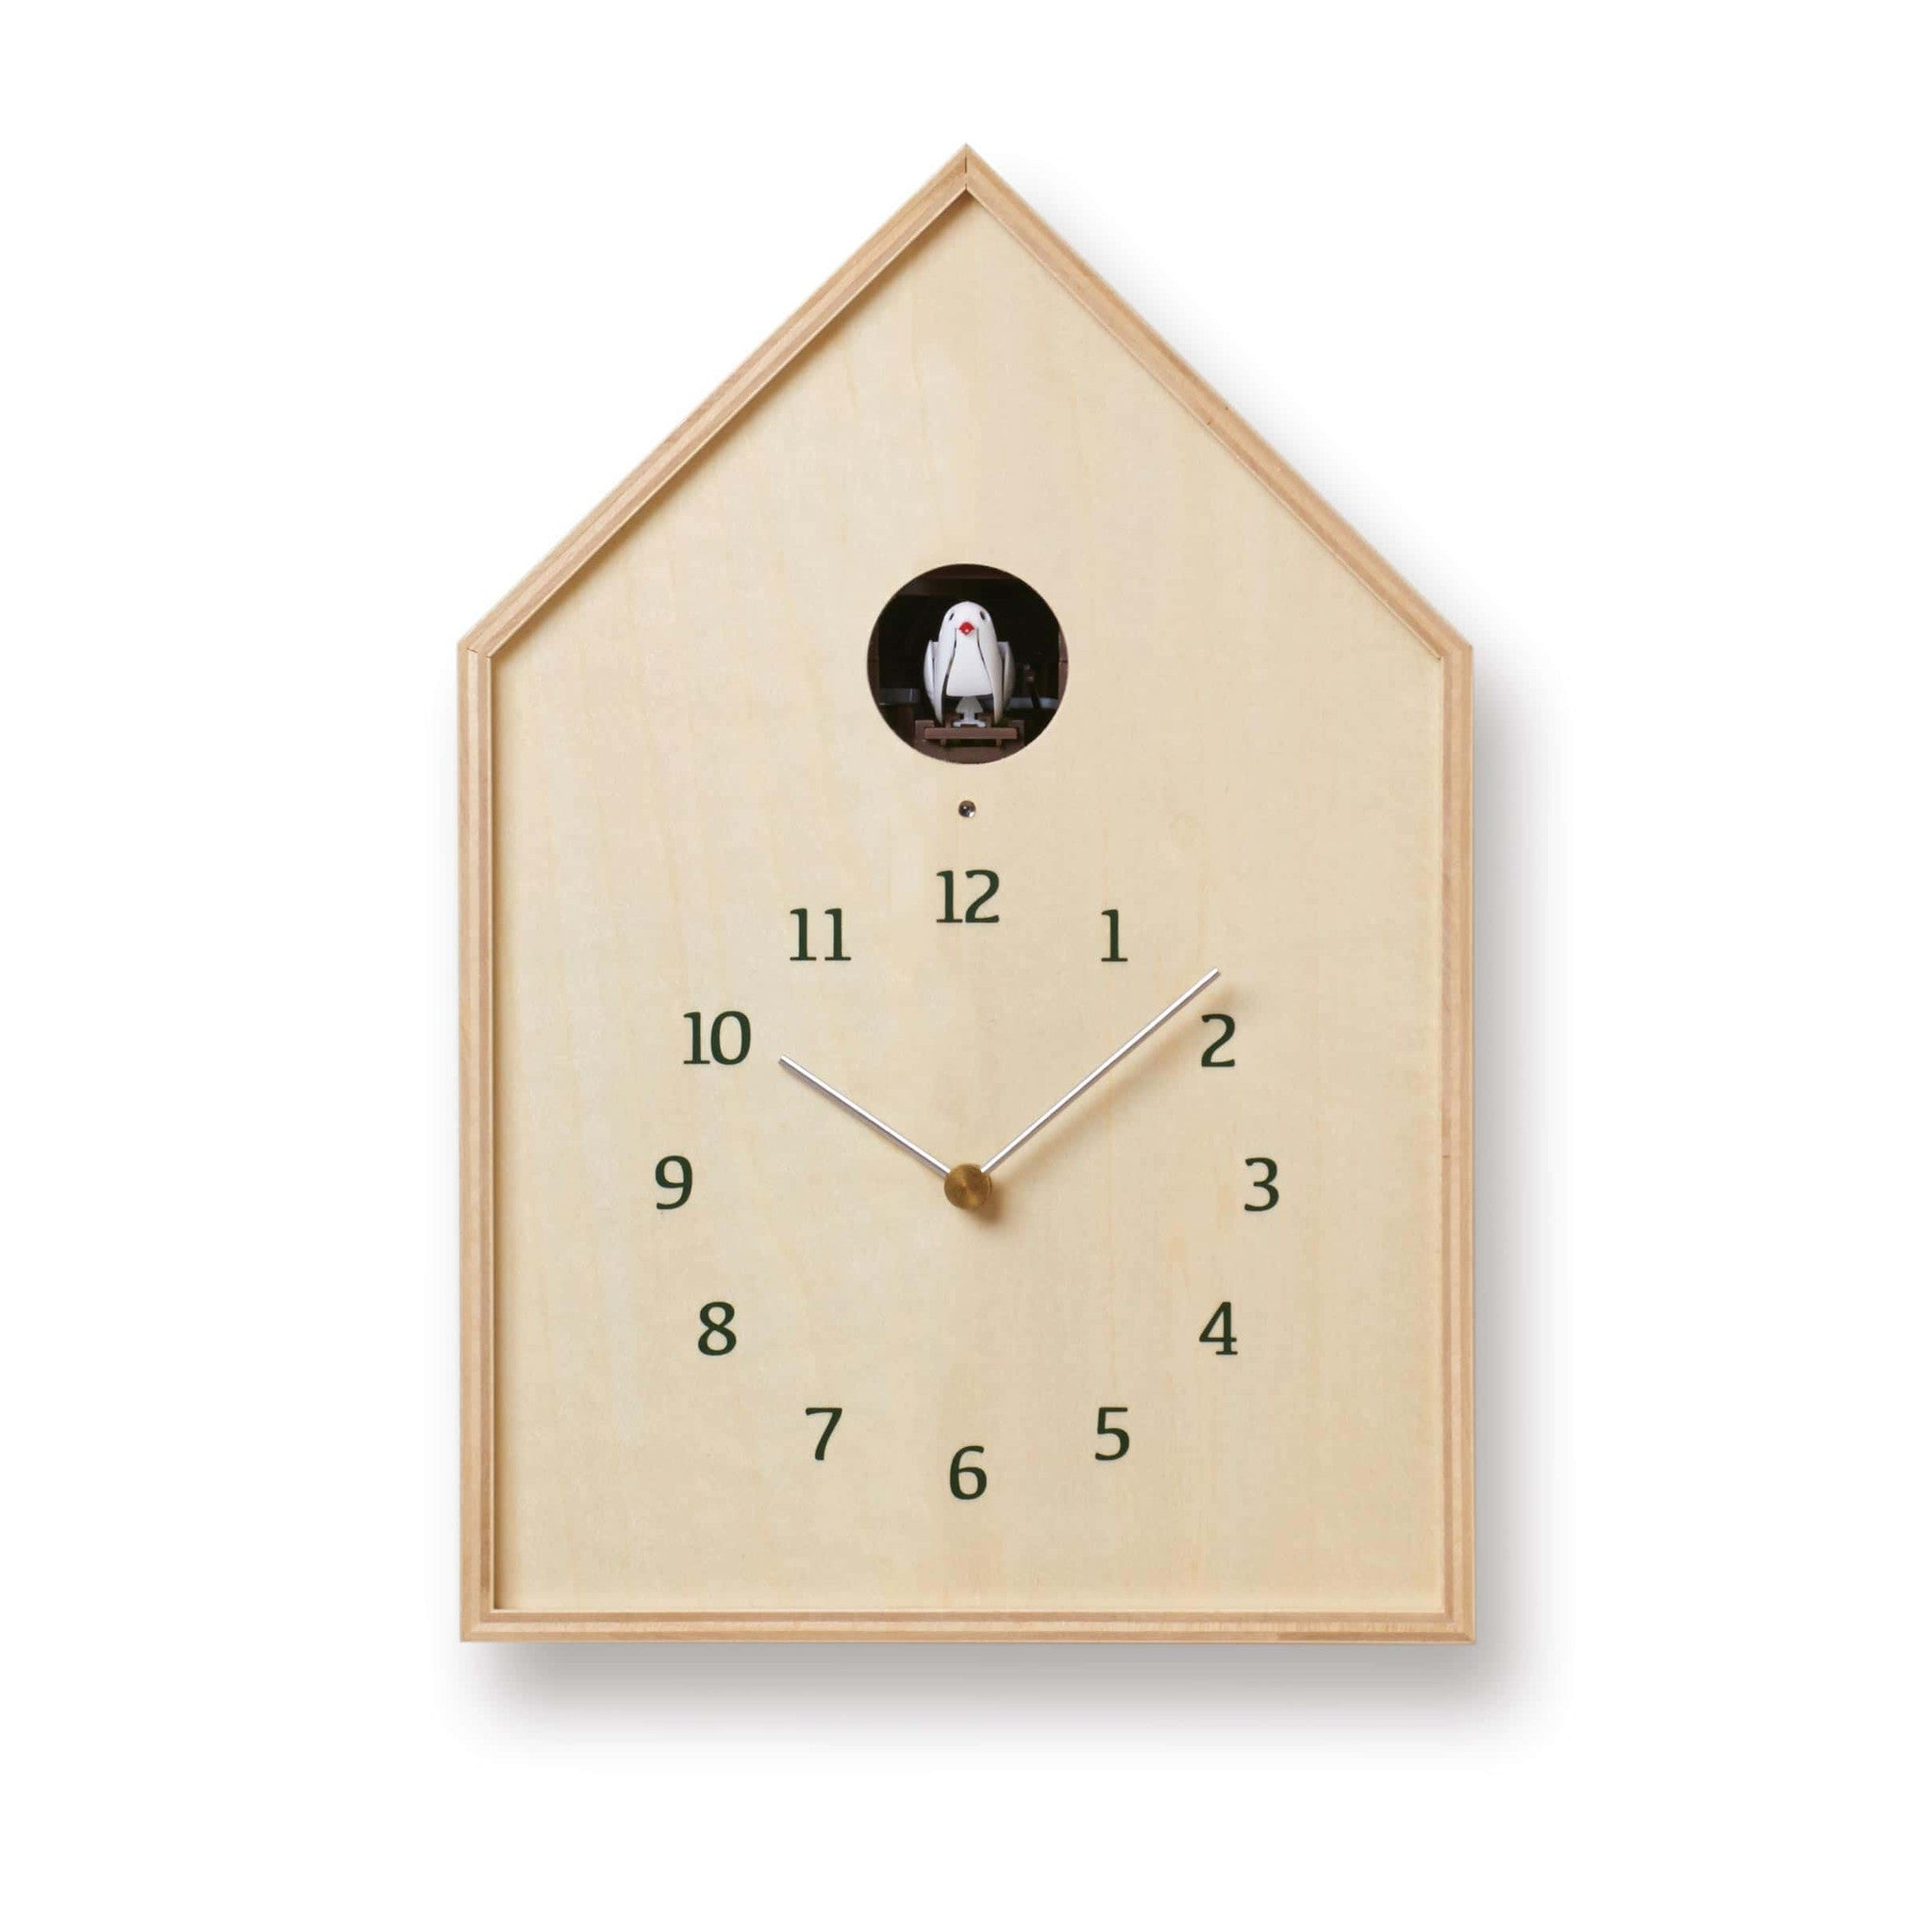 39 birdhouse 39 table wall cuckoo clock white by lemnos cuckoo collections - Cuckoo pendulum wall clock ...